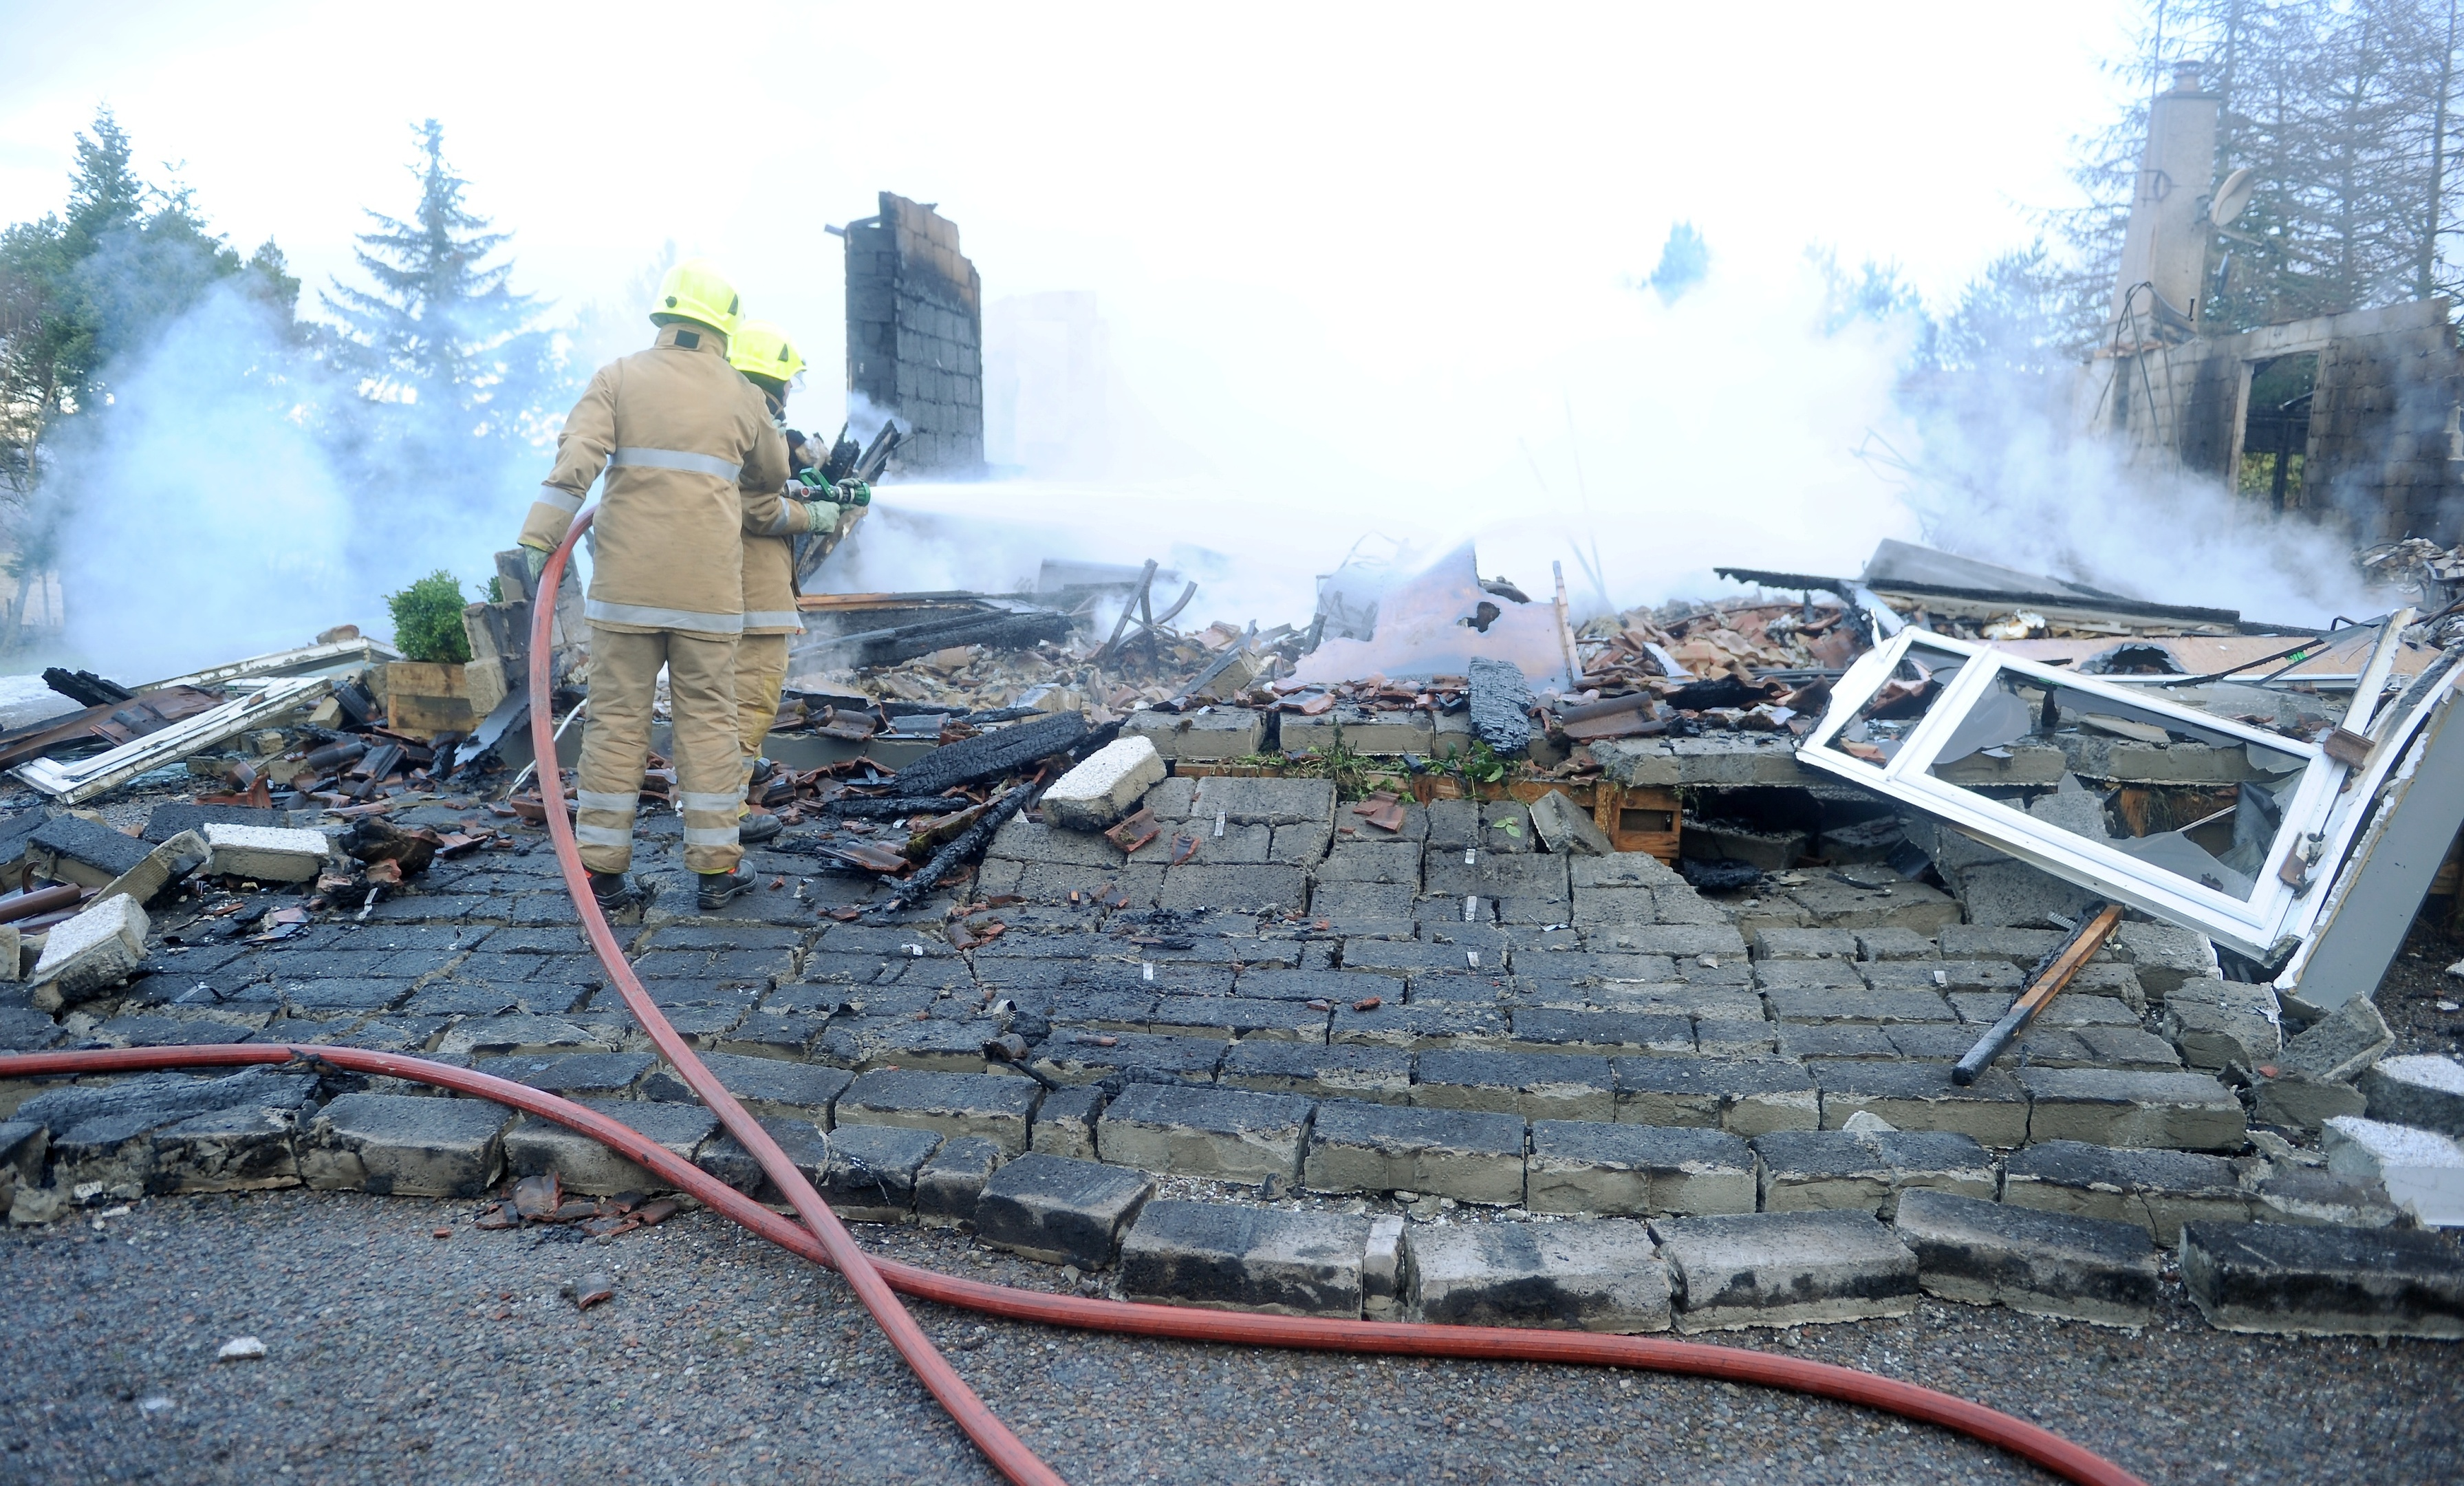 Firefighters continue to extinguish the fire which destroyed a house in the Foxhole area of Kiltarlity. Picture by Sandy McCook